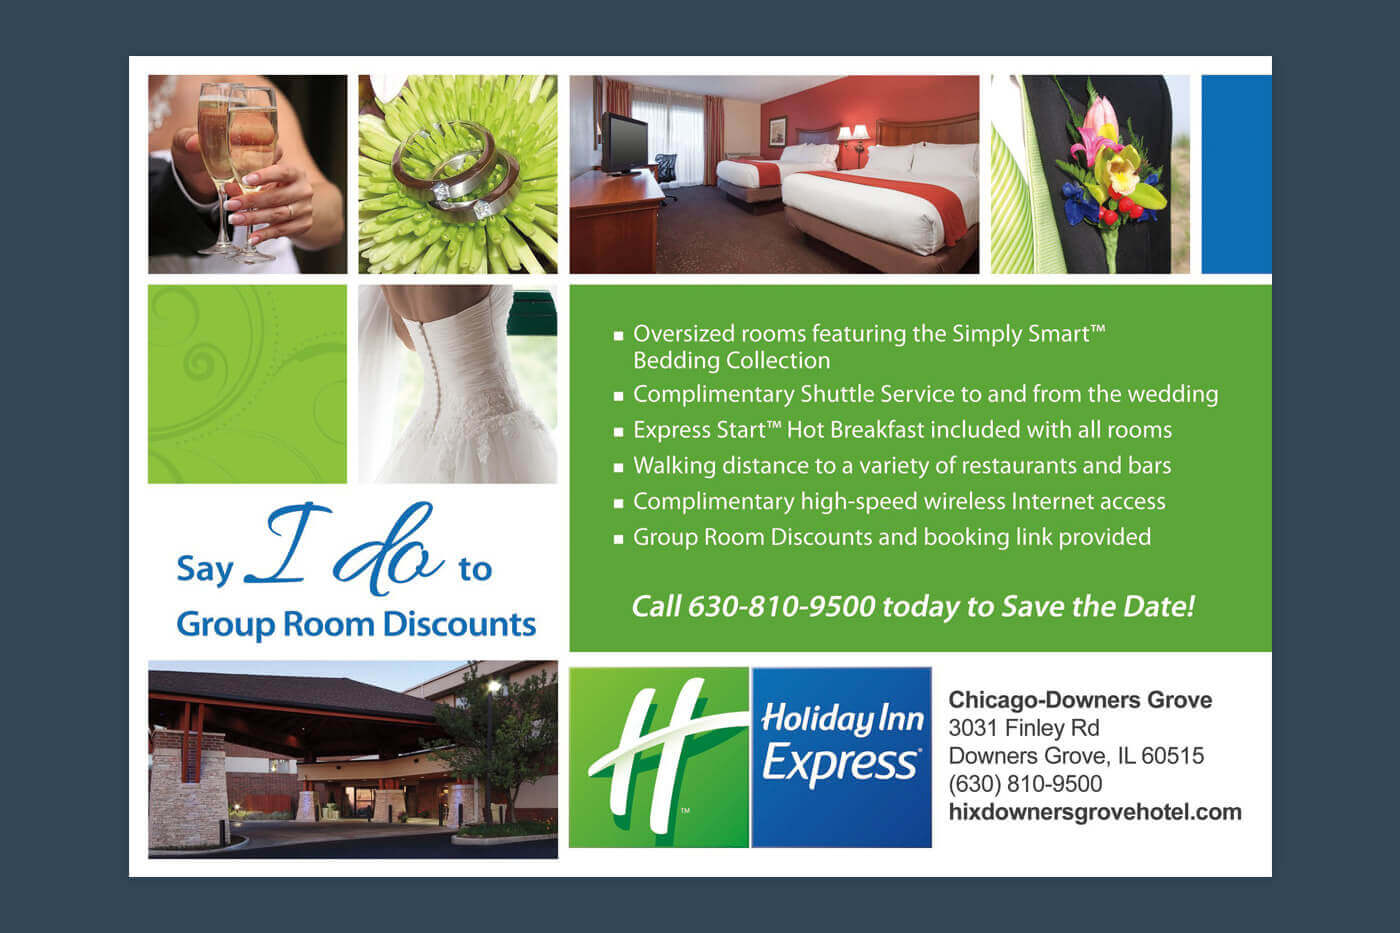 Collateral Design - Holiday Inn Express Chicago-Downers Grove